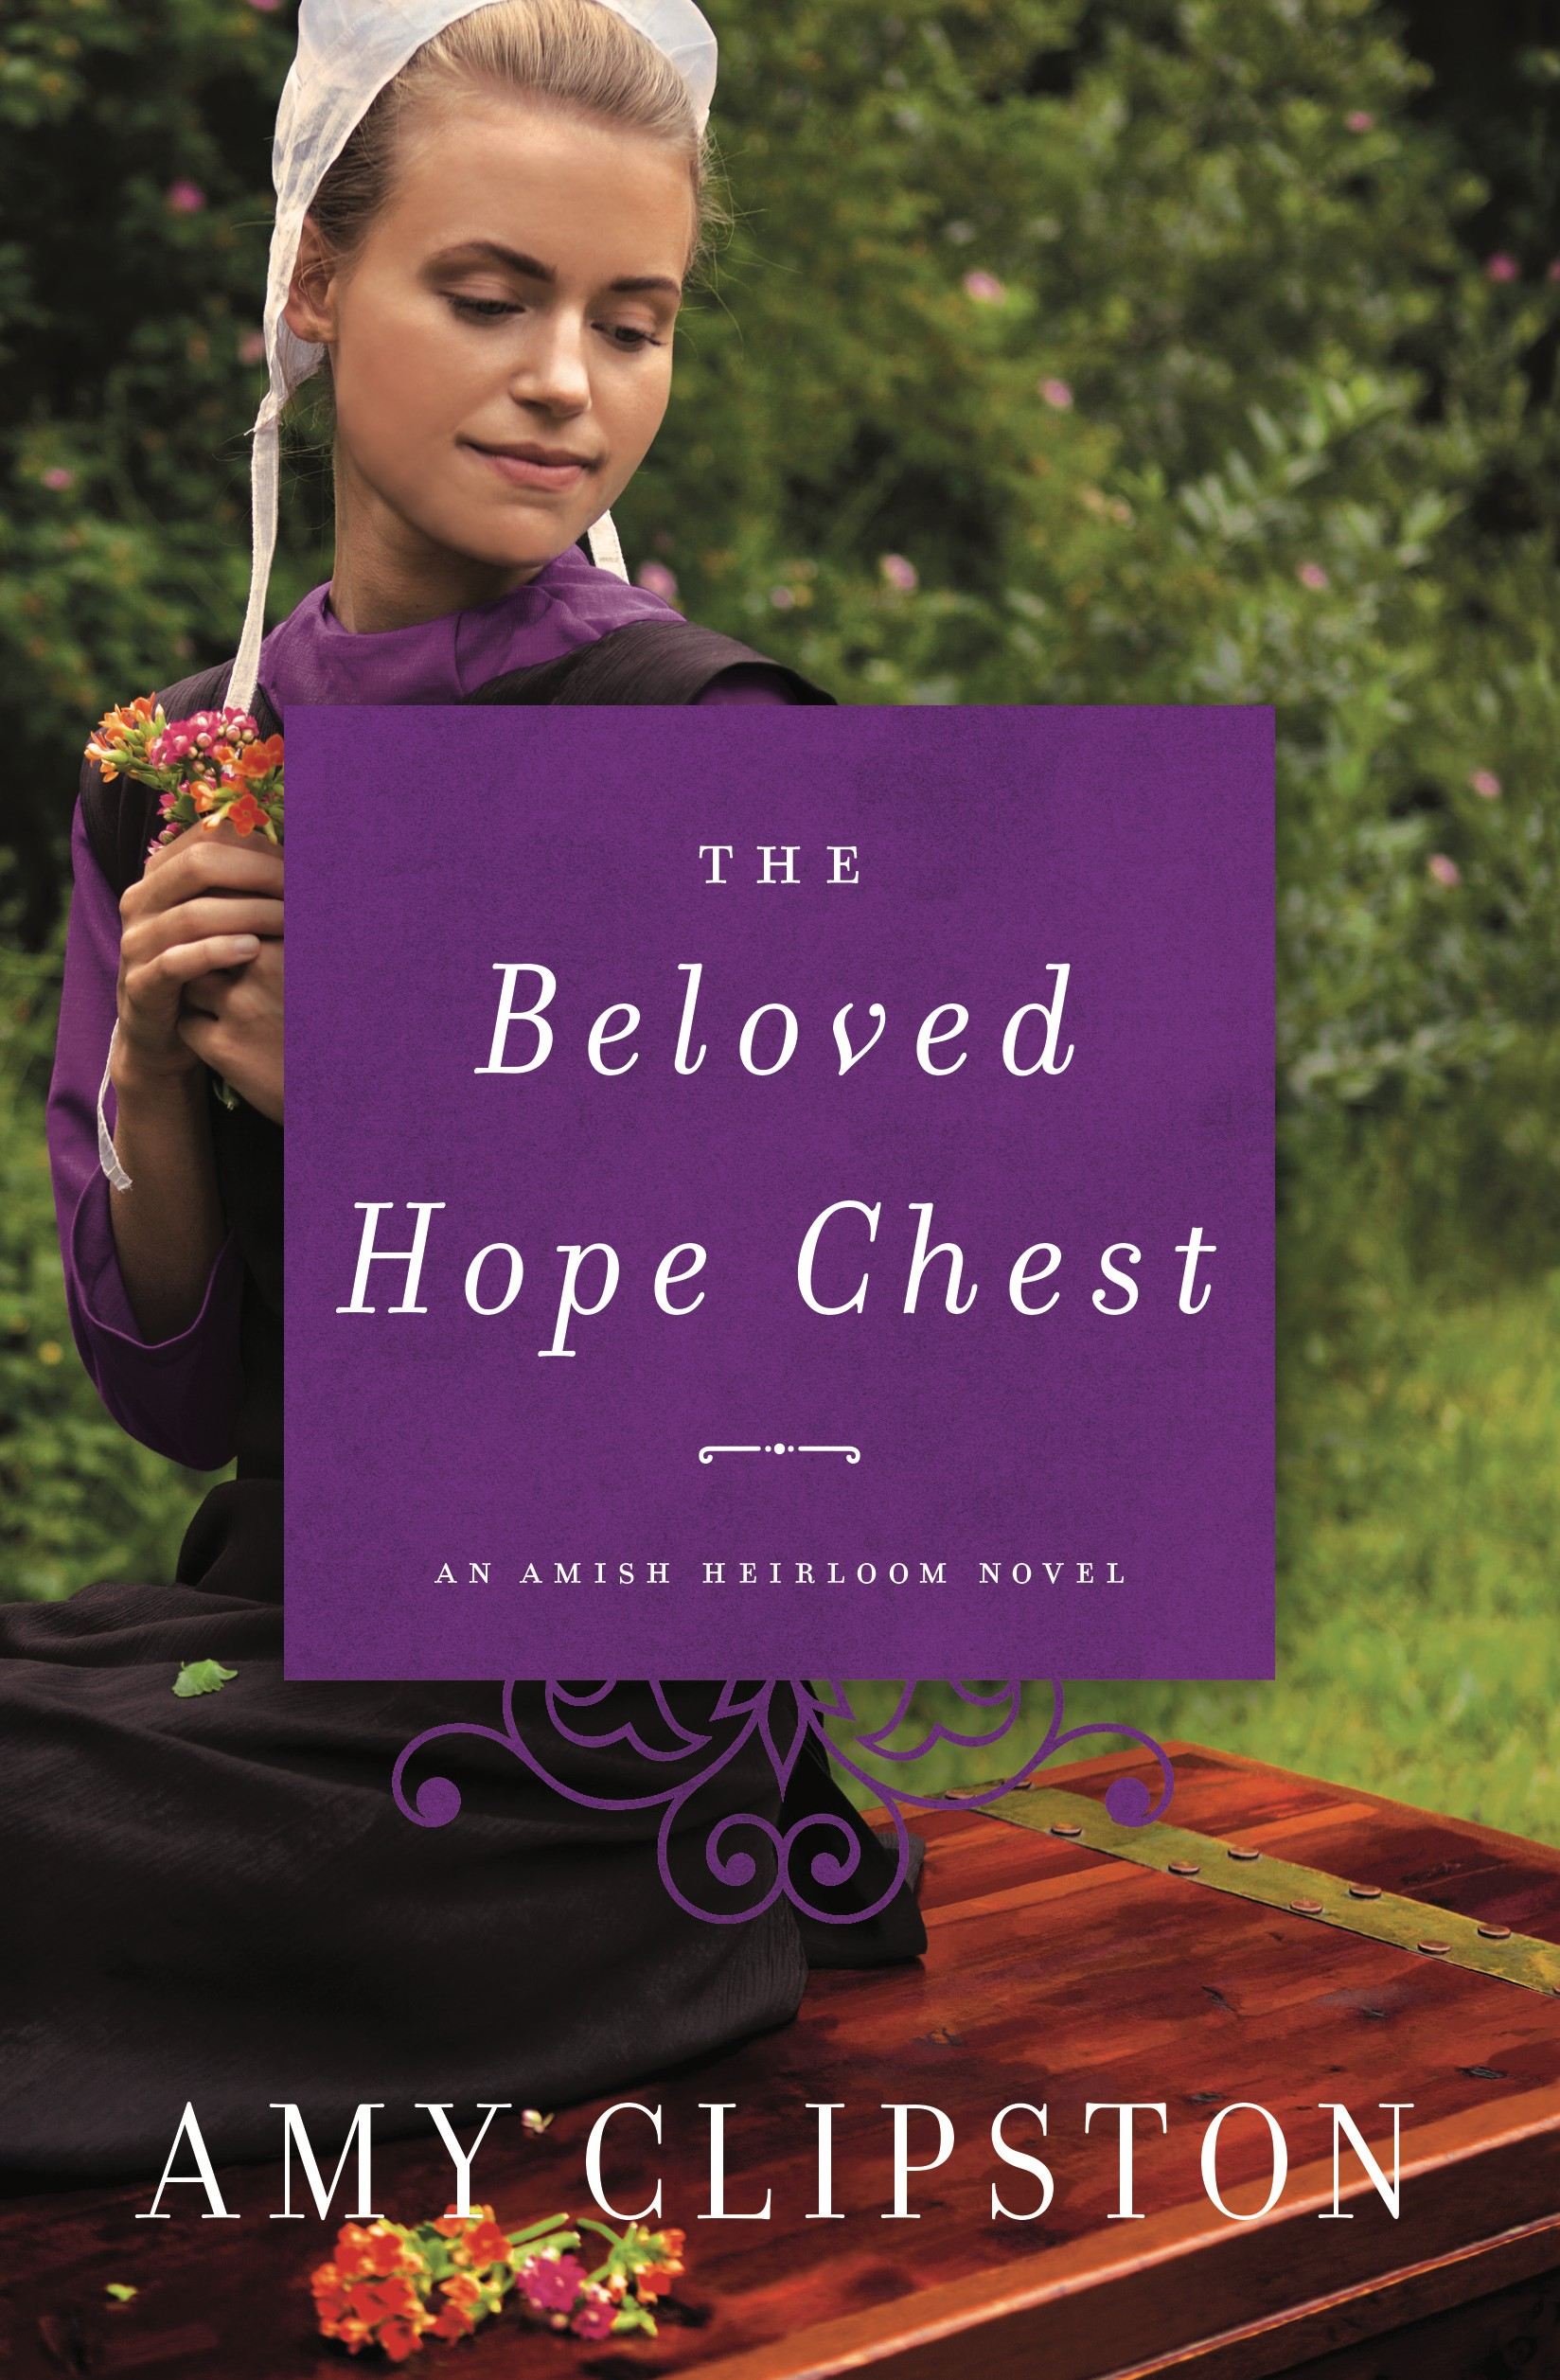 The Beloved Hope Chest